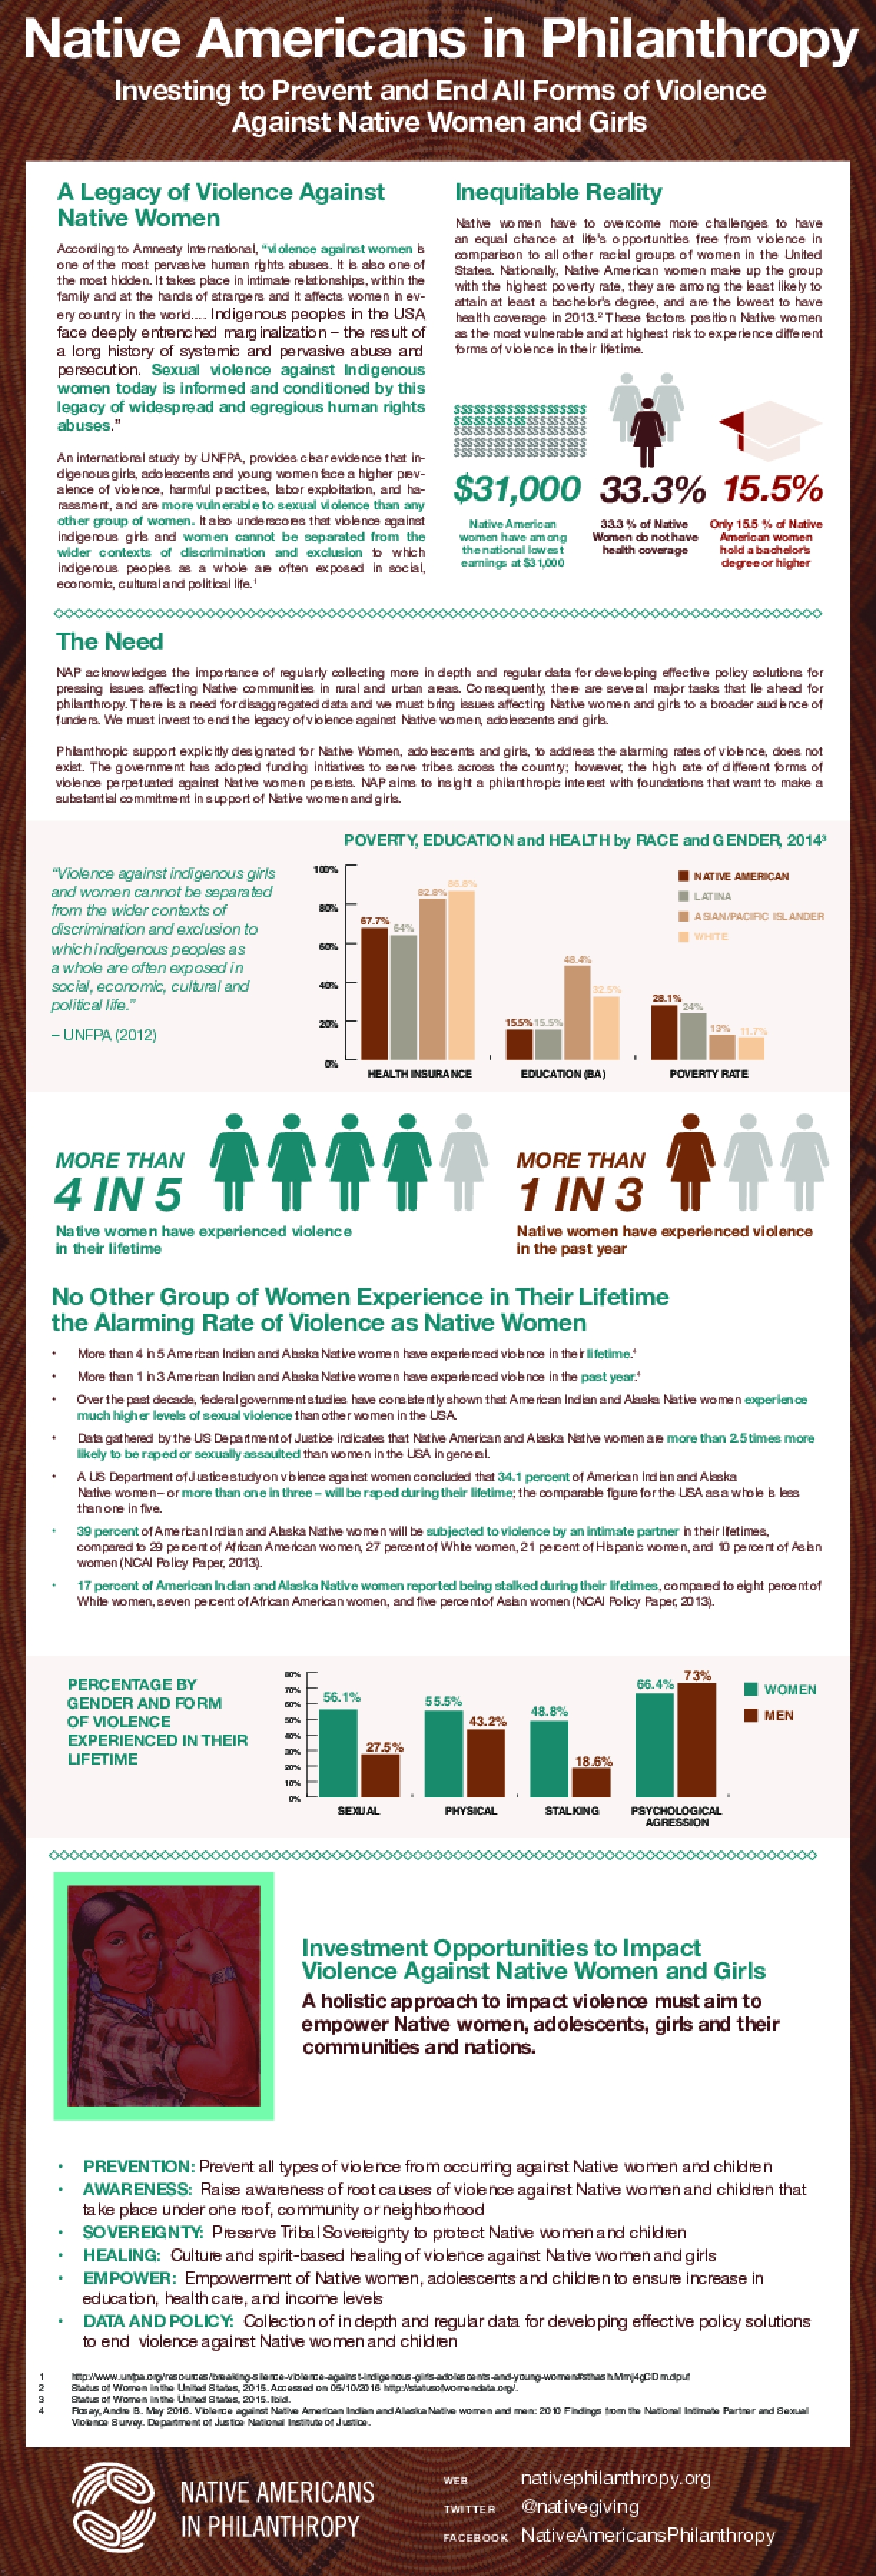 Investing to Prevent and End All Forms of Violence Against Native Women and Girls